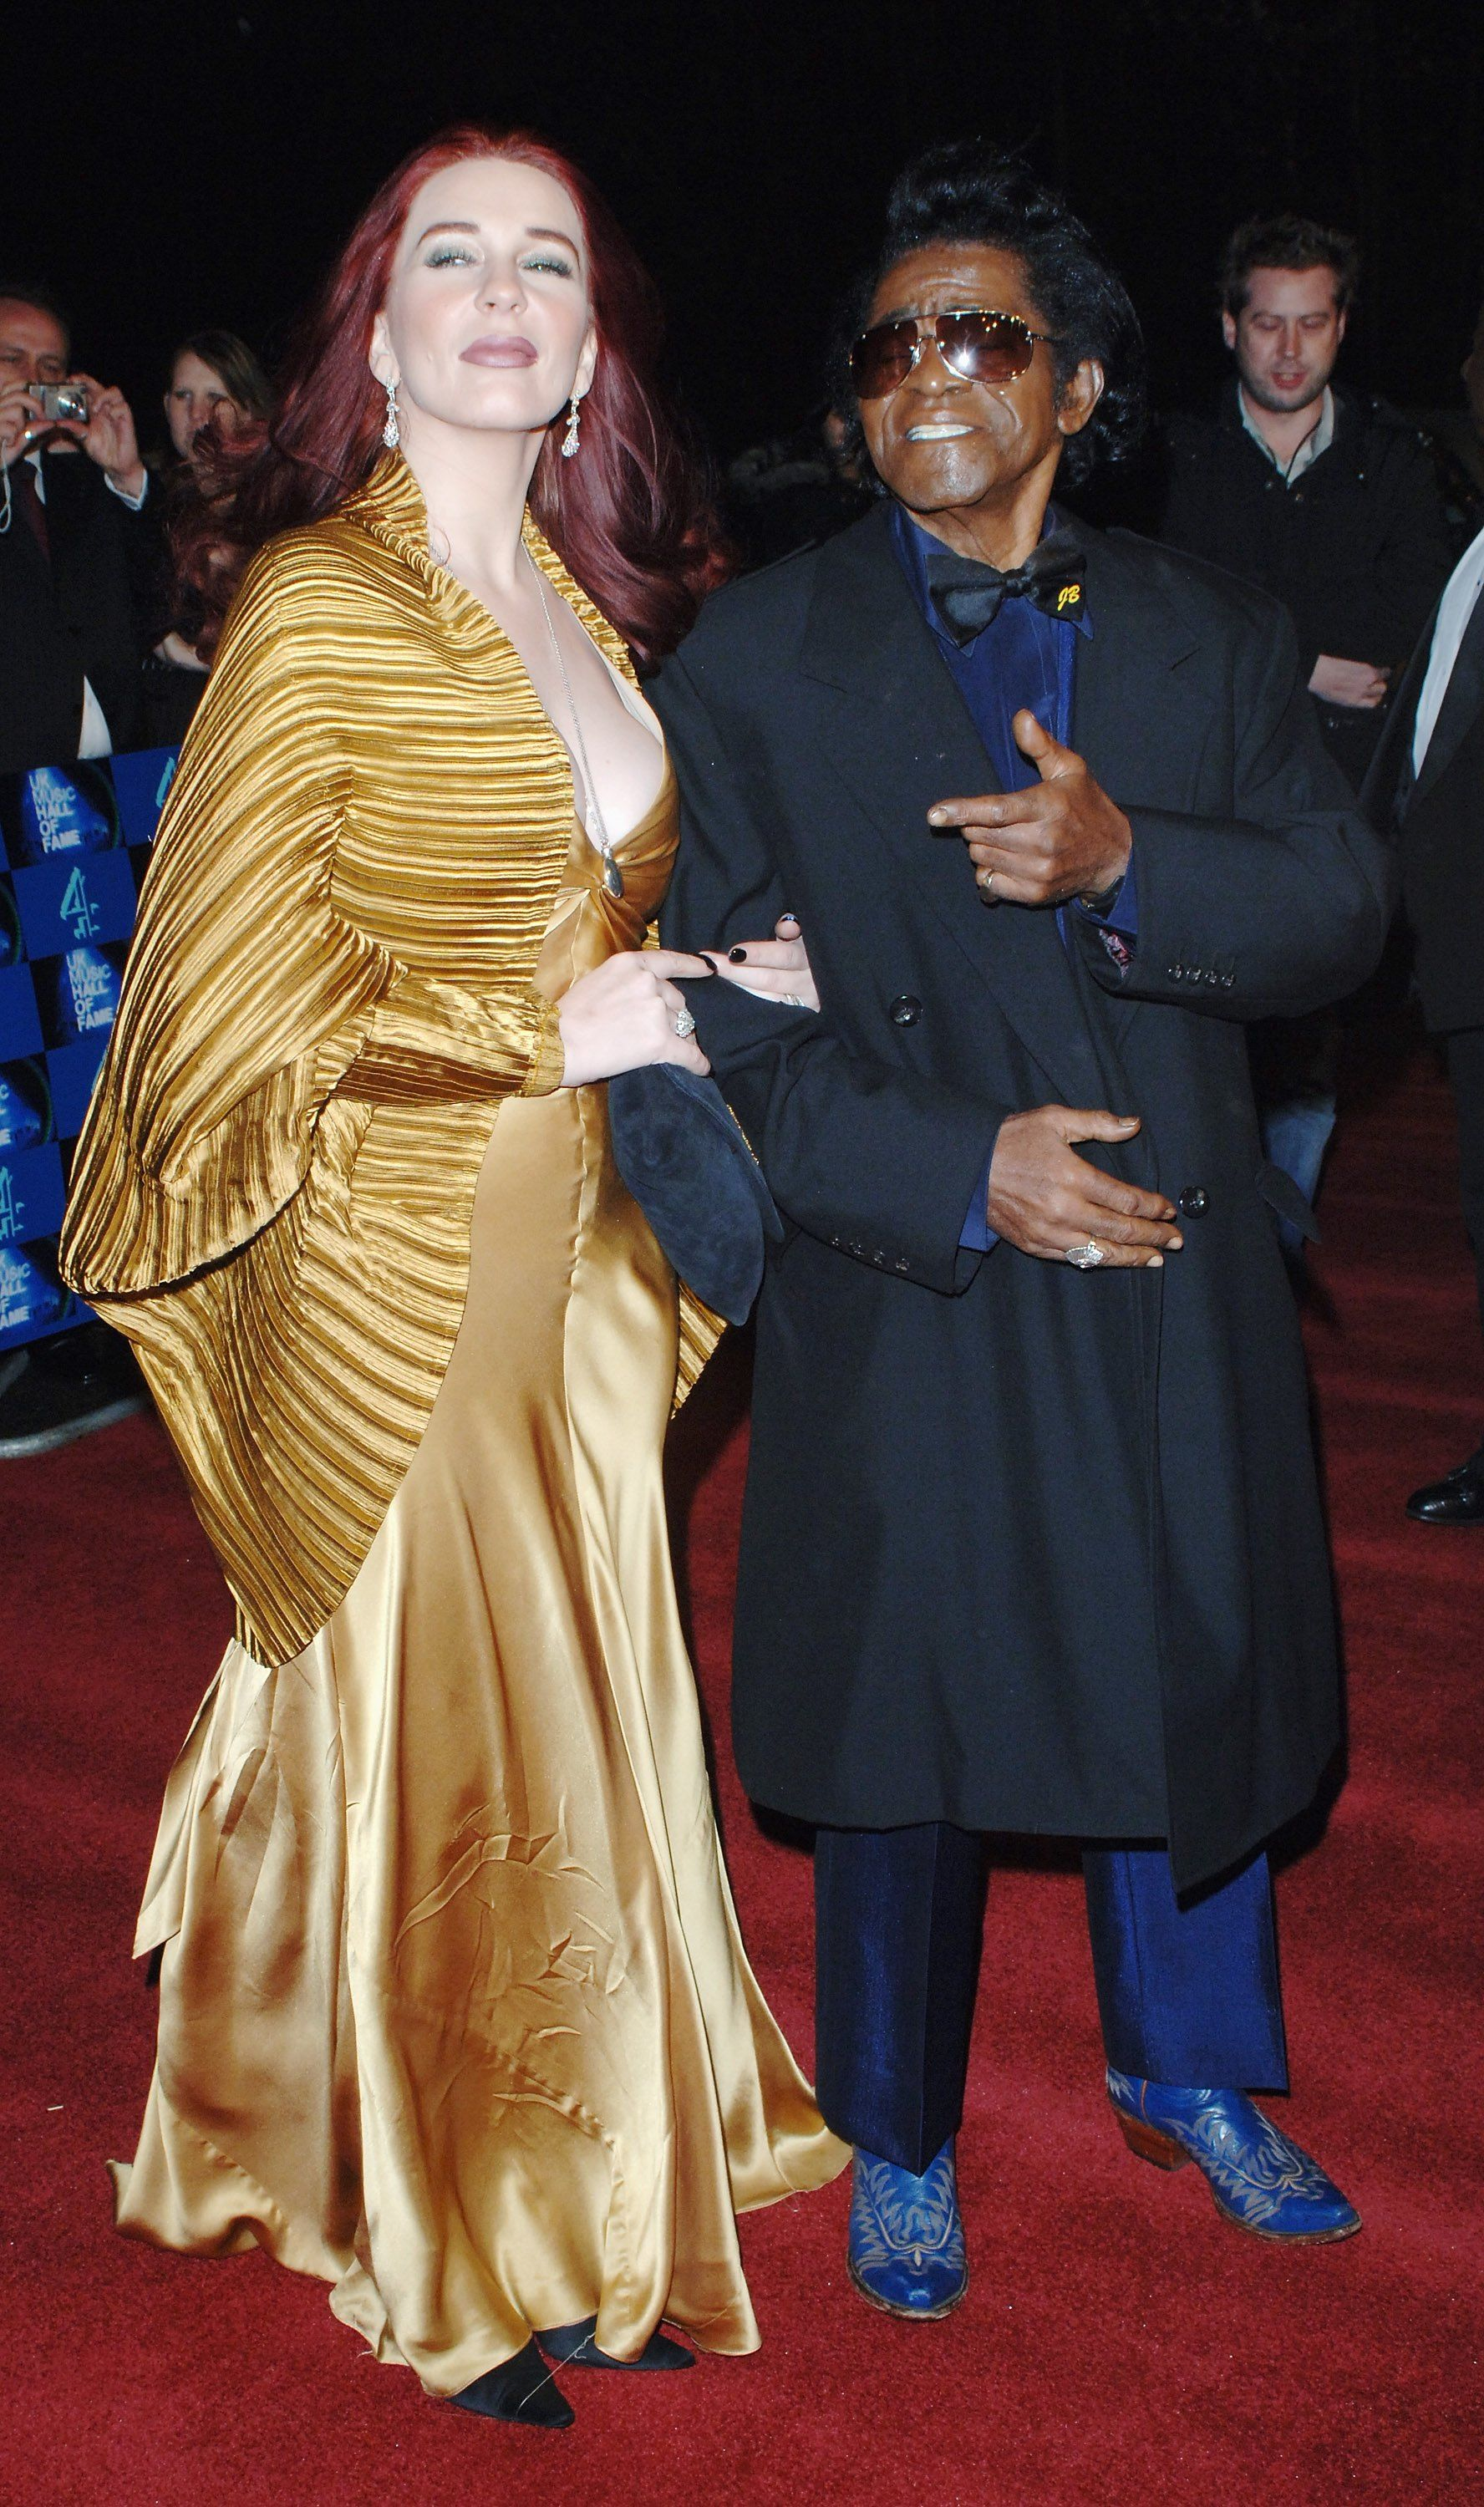 James Brown with Tomi Rae Hynie at the UK Music Hall Of Fame 2006, at Alexandra Palace on November 14, 2006 | Photo: Getty Images